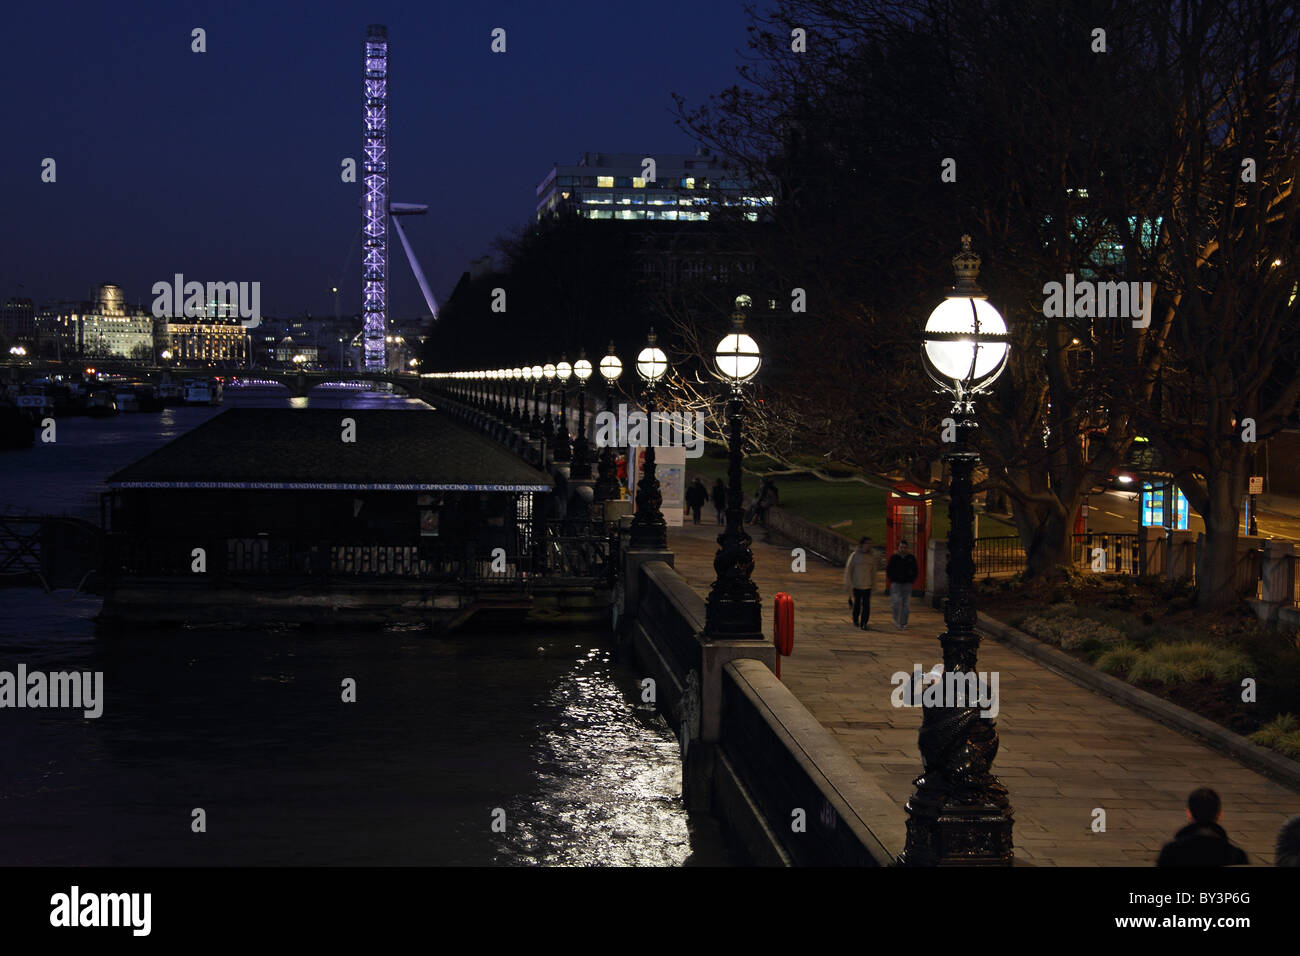 London Eye night embankment street lights lamps - Stock Image